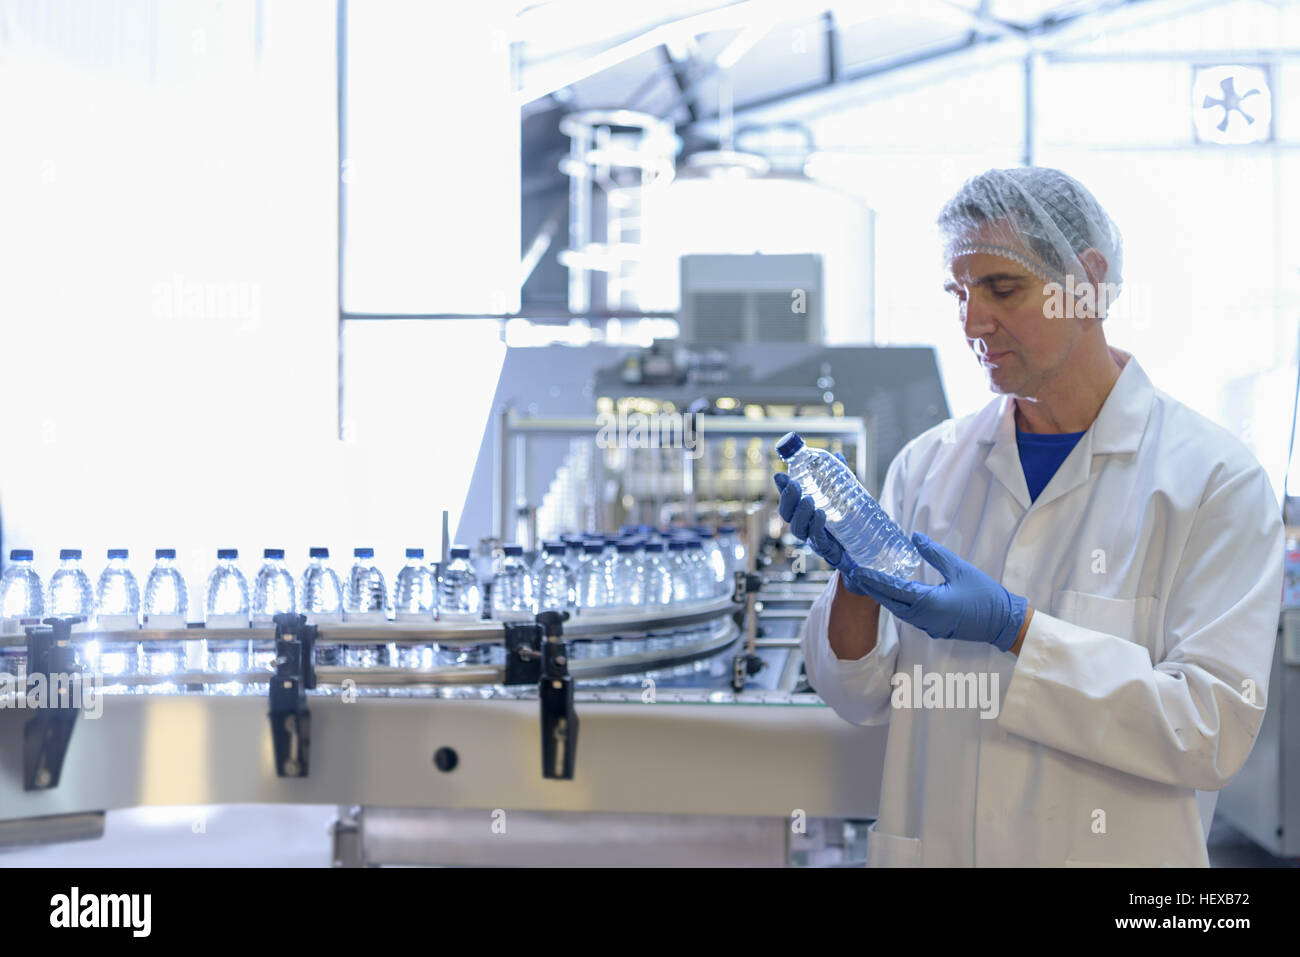 Worker inspecting water bottle on production line in spring water factory - Stock Image